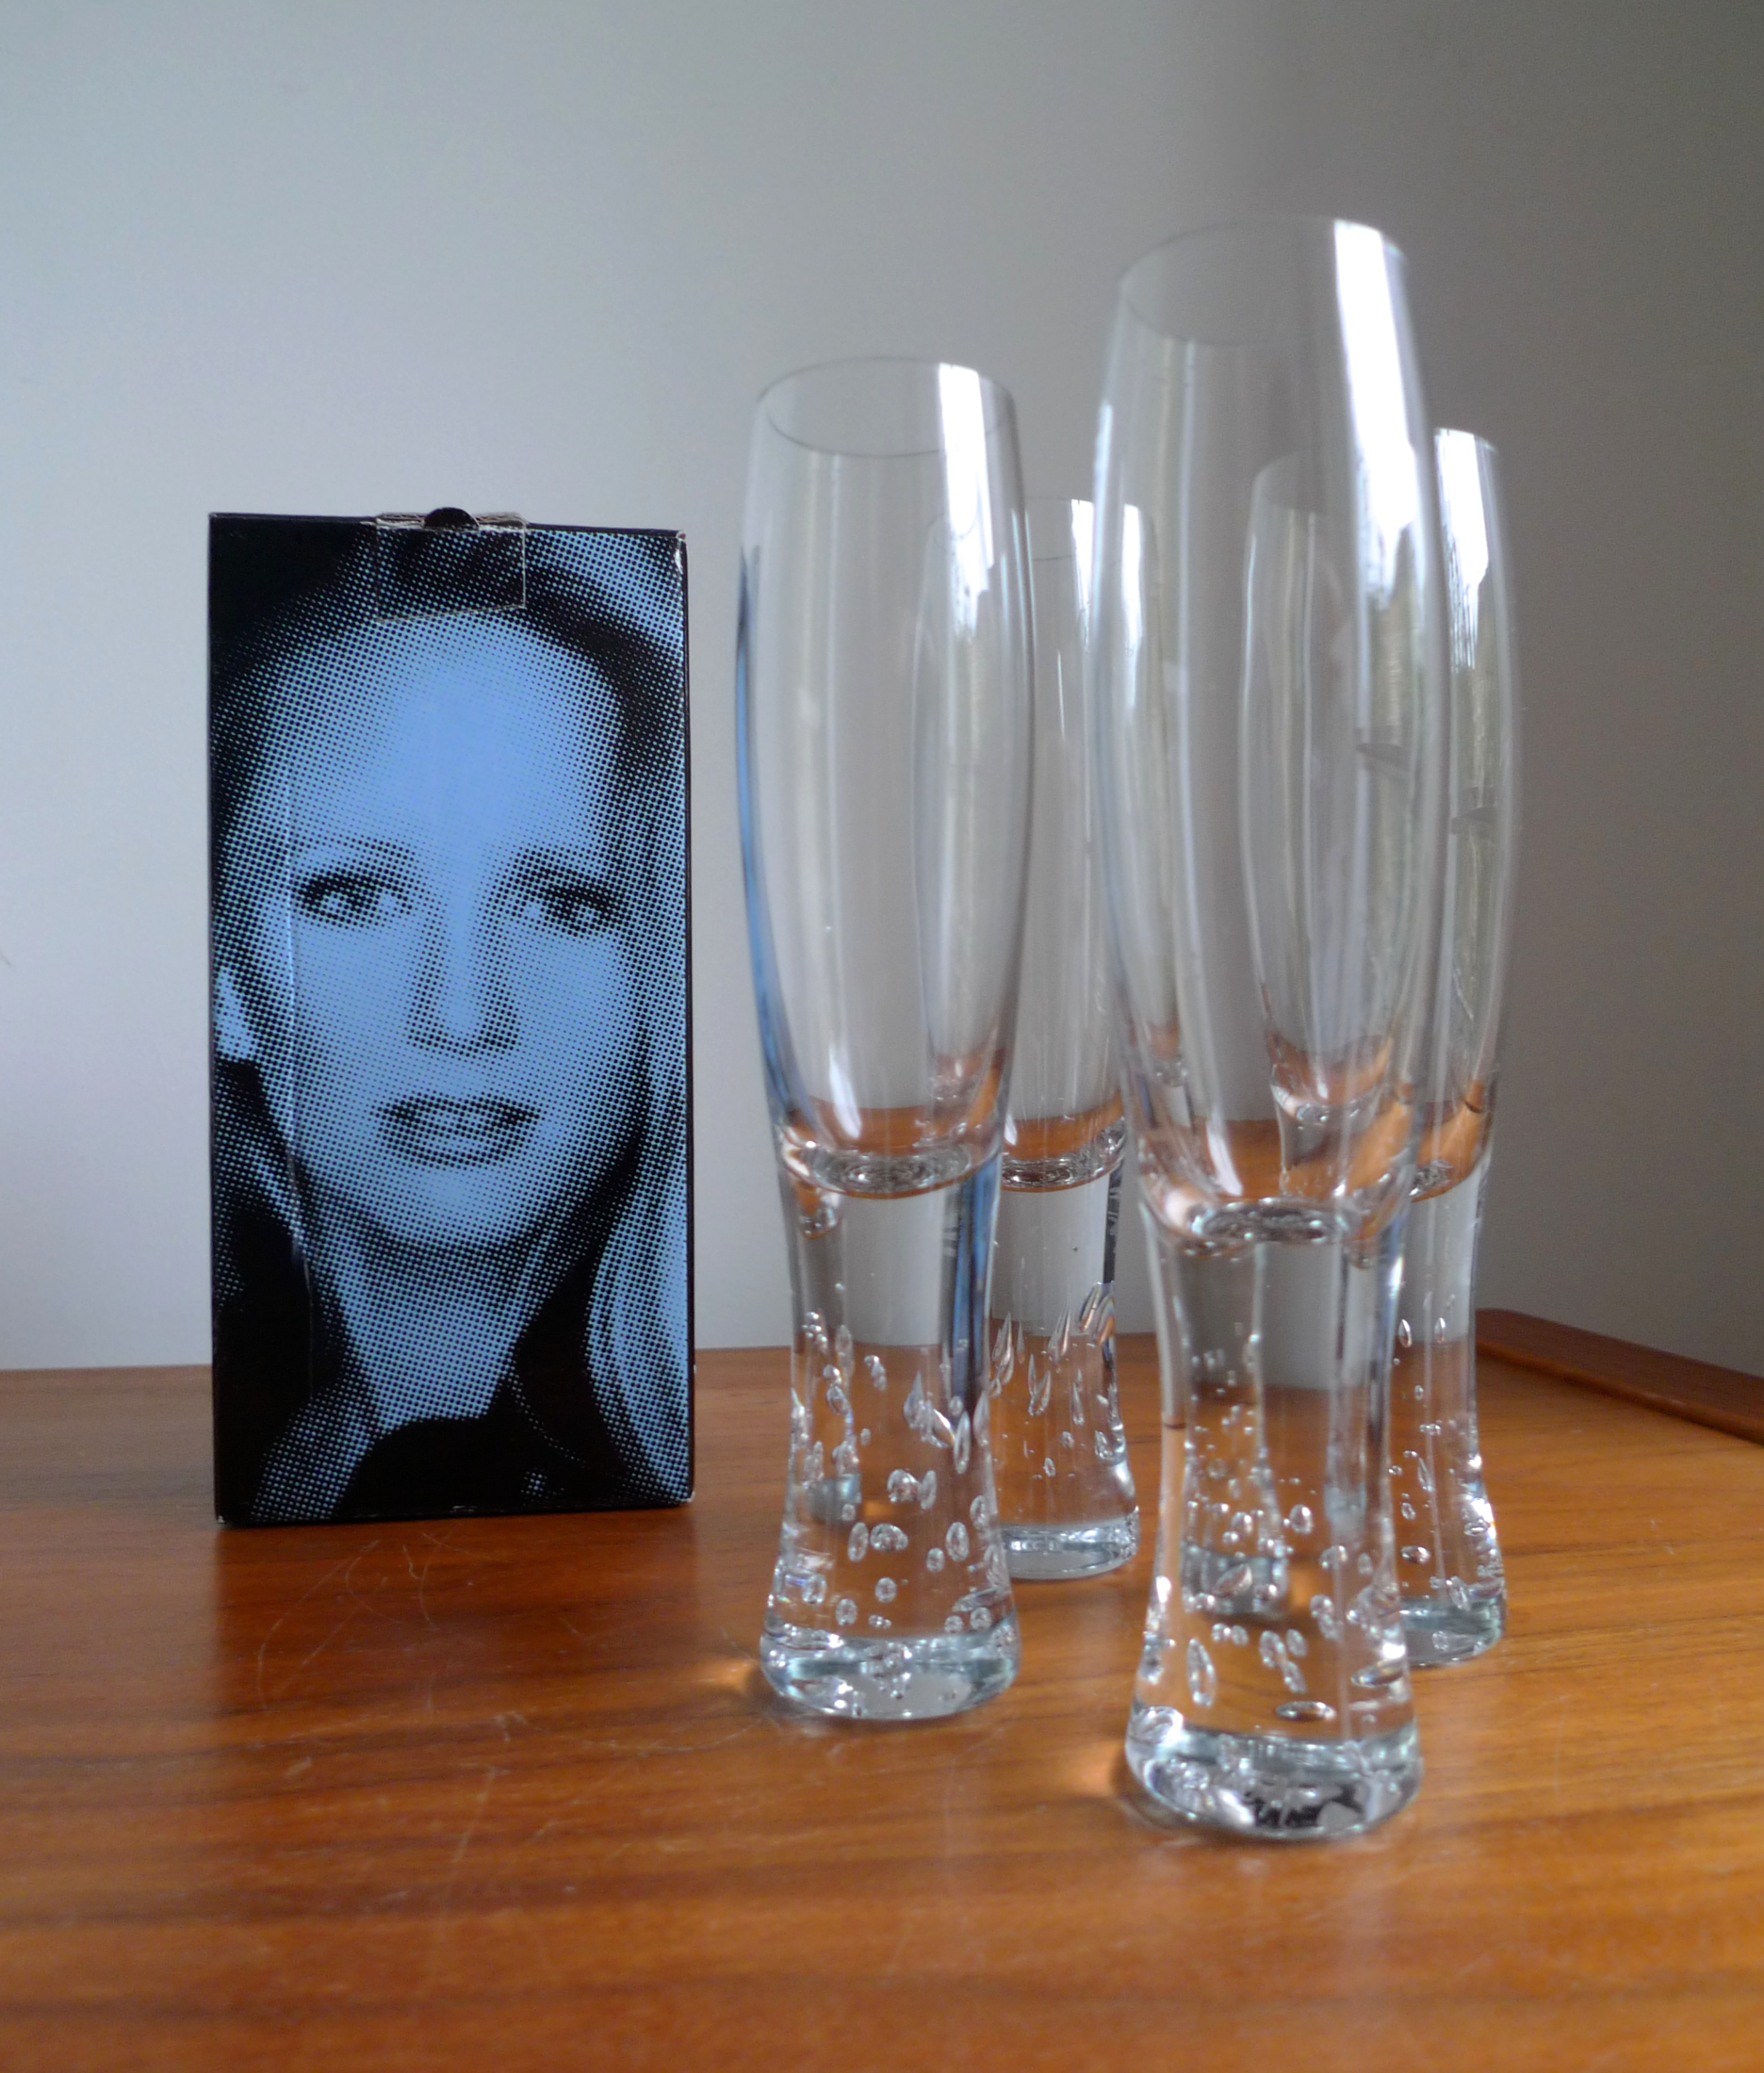 Habitat Quot Vip Quot Range Champagne Glasses By Tanya Streeter Place Called Space